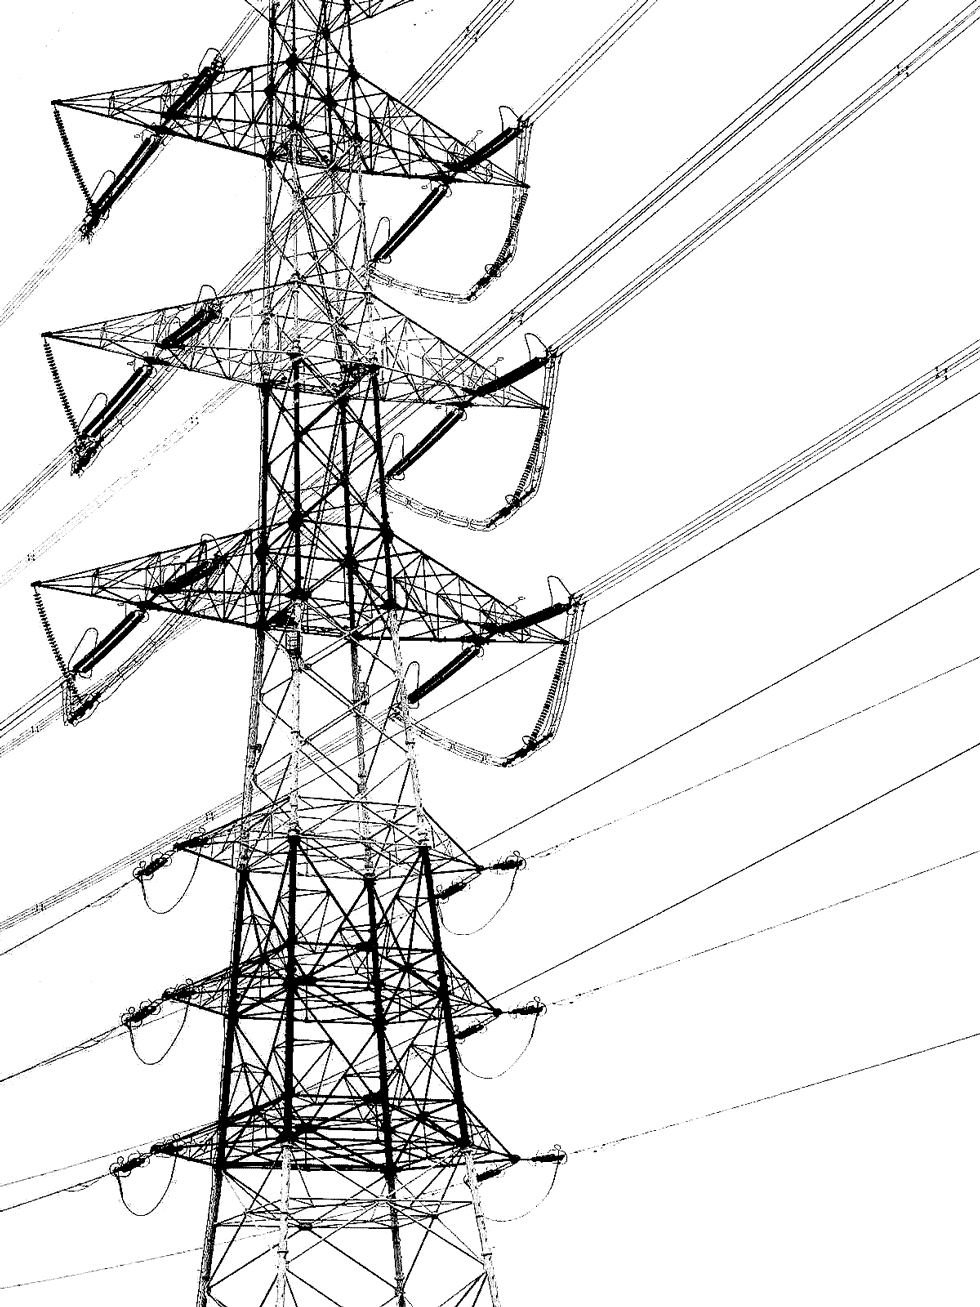 The electric tower photo converted to monotone high contrast